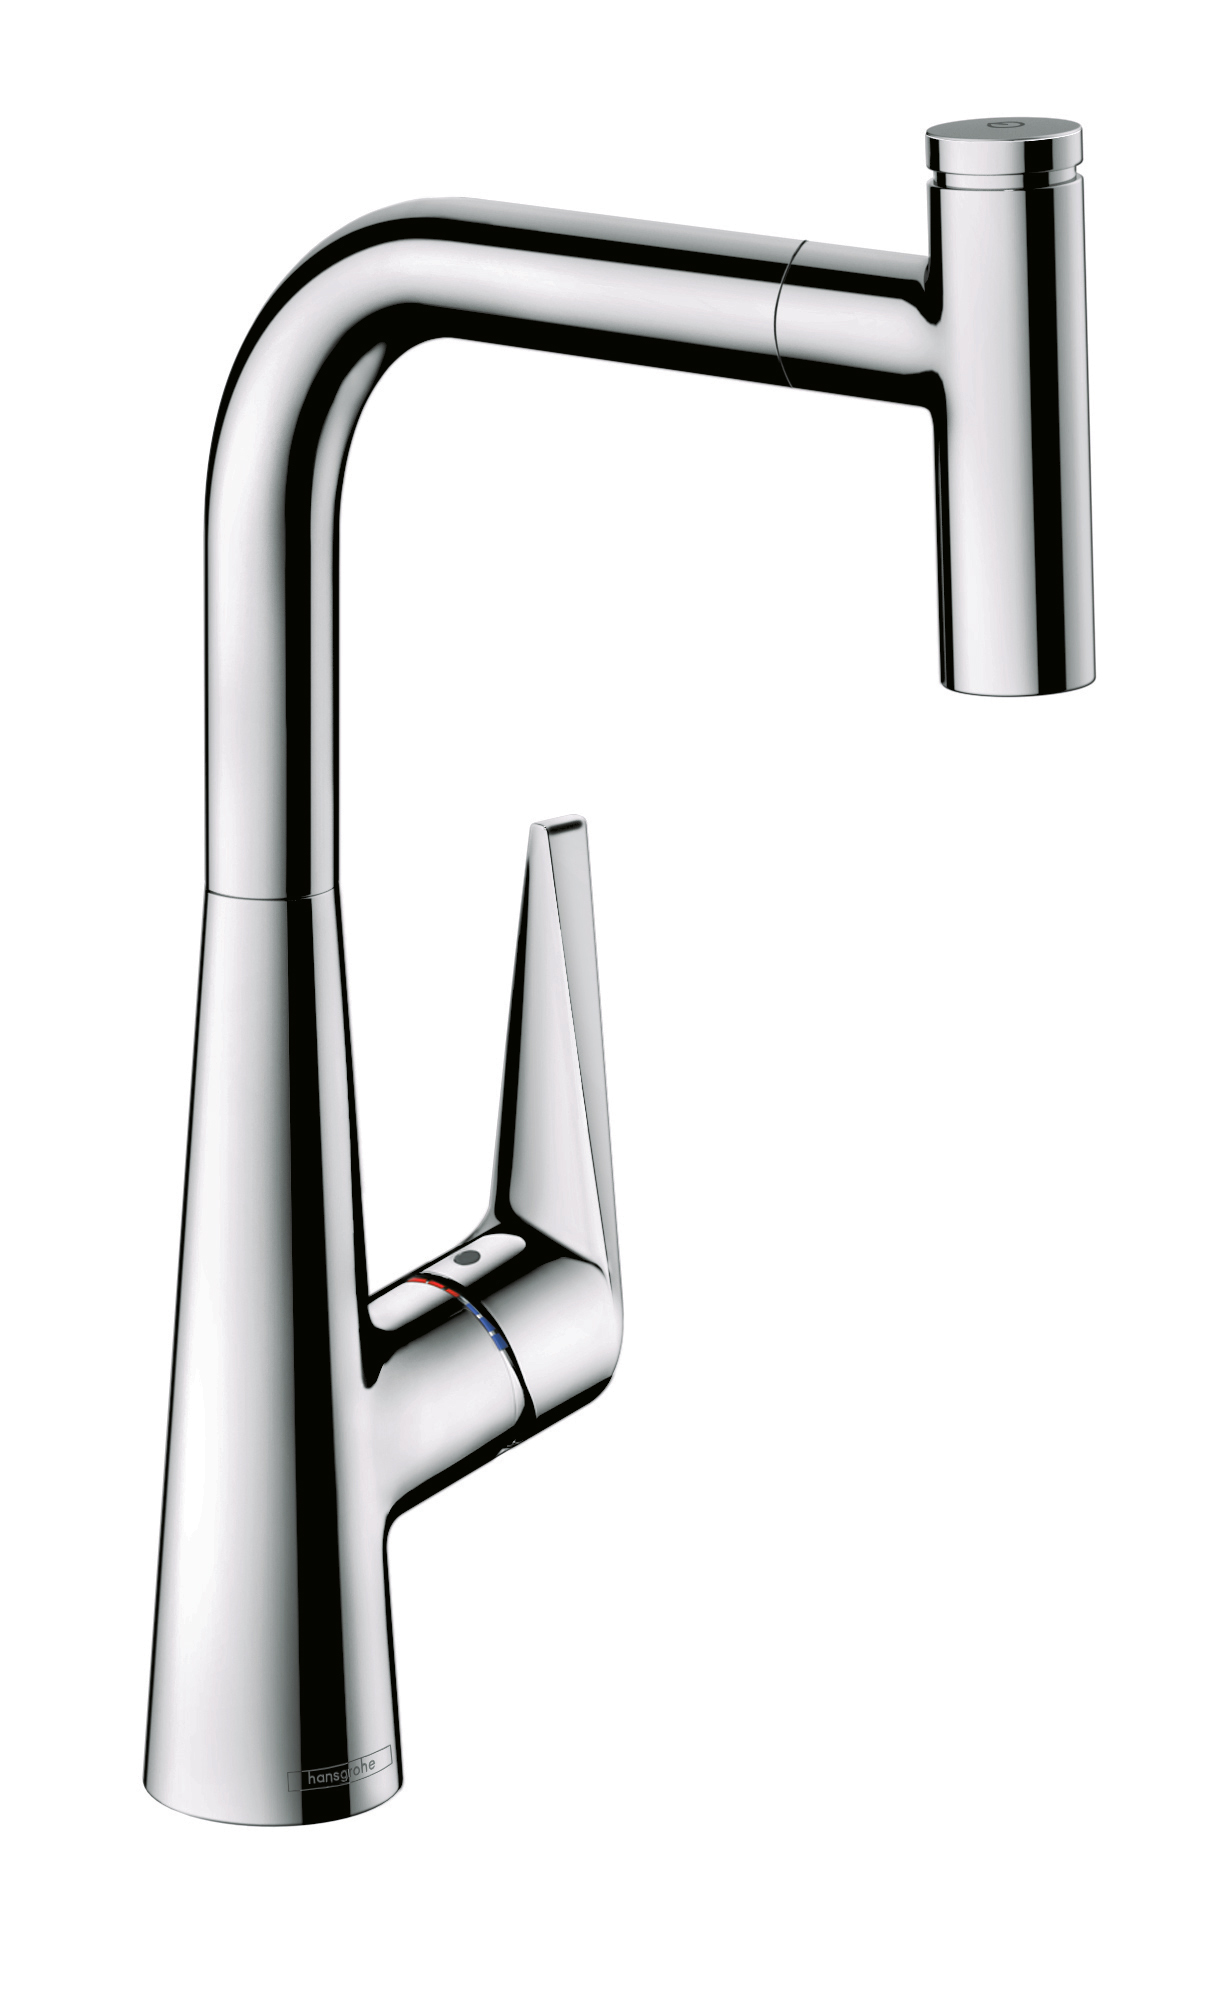 Hansgrohe_Talis_Select_S_Katie Couric.jpg